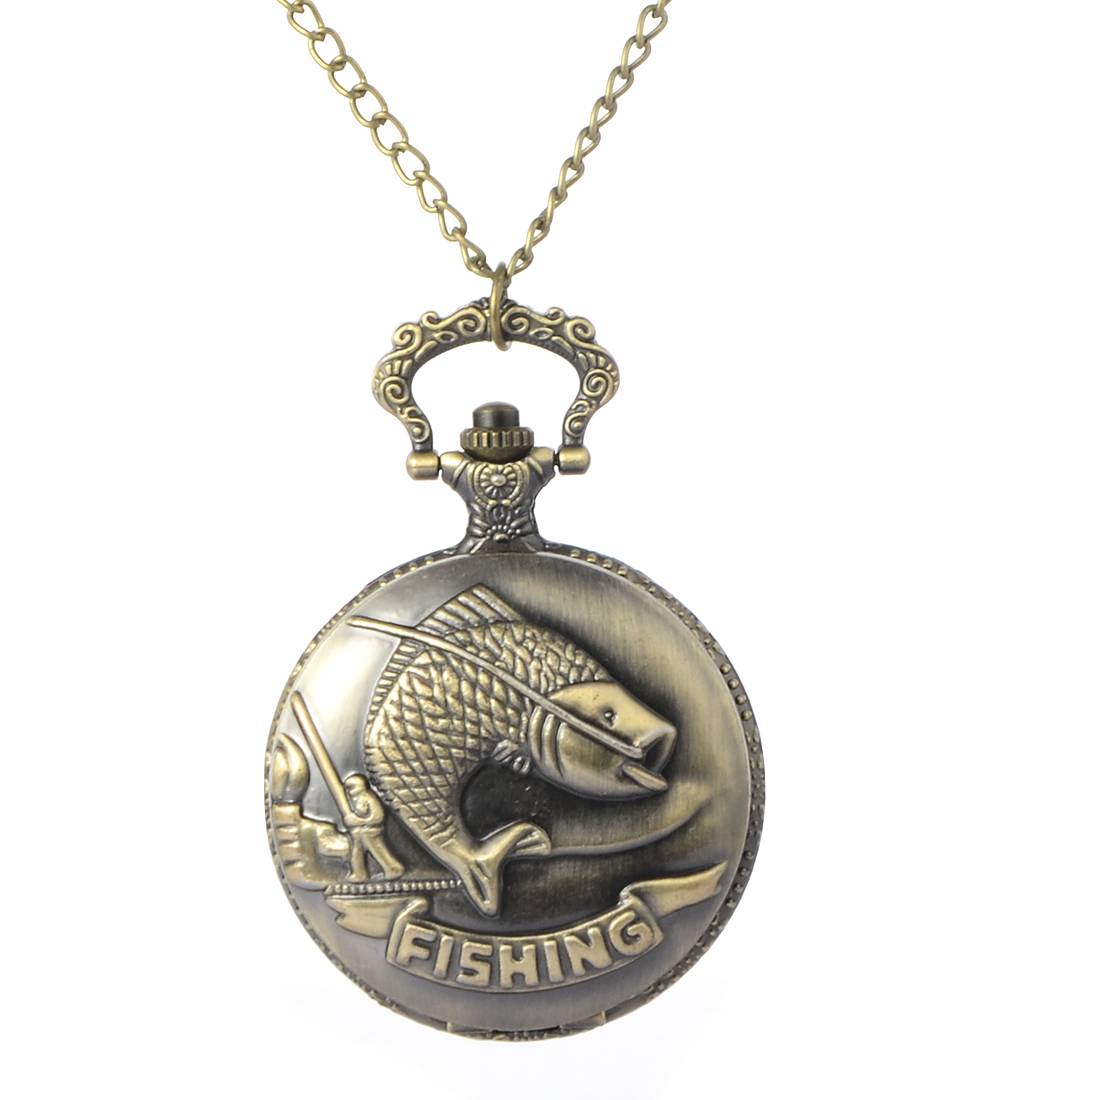 Cindiry New Vintage Bronze Fishing Angling Quartz Antique Pocket Watch for Men and Women P25